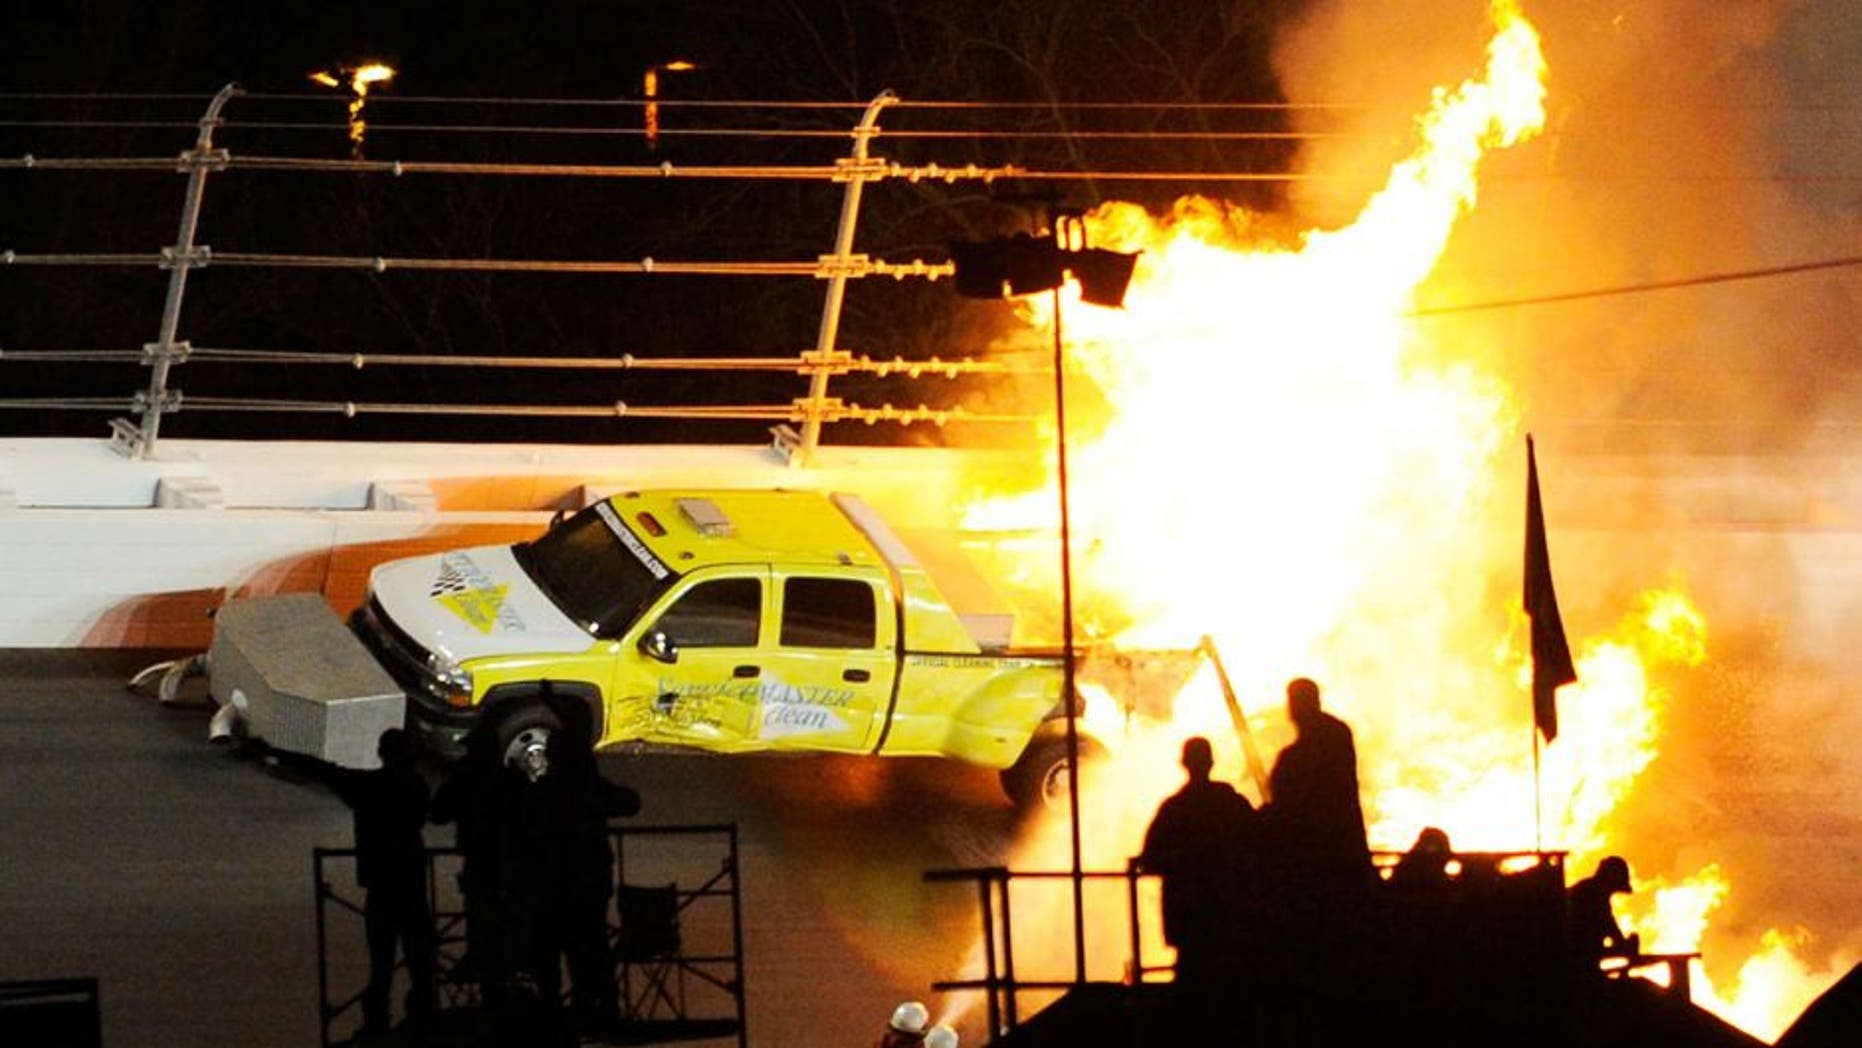 DAYTONA BEACH, FL - FEBRUARY 27: Safety workers try to extinguish a fire from a jet dryer after being hit by Juan Pablo Montoya, driver of the #42 Target Chevrolet, under caution during the NASCAR Sprint Cup Series Daytona 500 at Daytona International Speedway on February 27, 2012 in Daytona Beach, Florida. (Photo by John Harrelson/Getty Images for NASCAR)